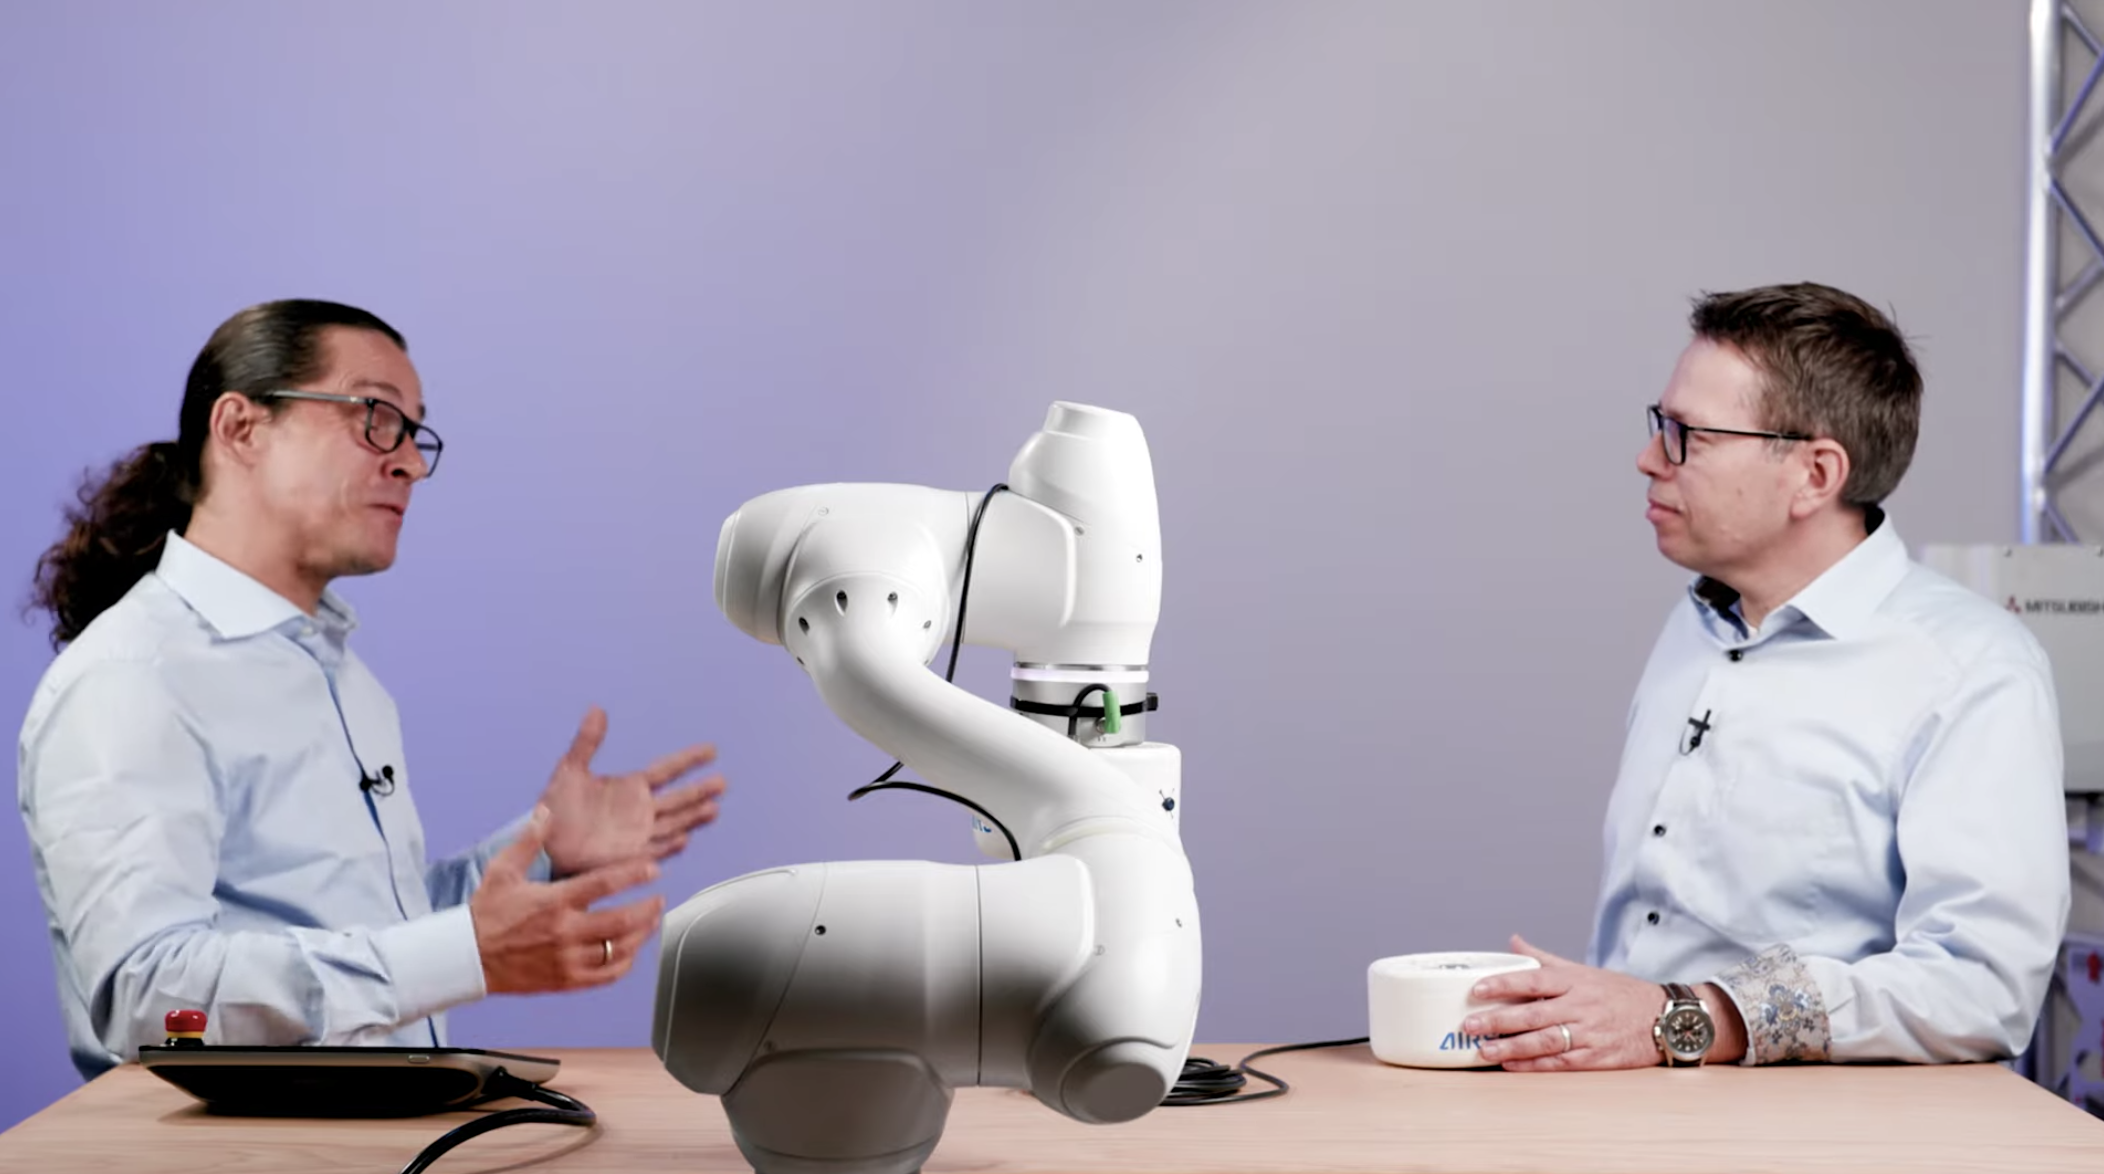 Two men talking about a collaborative robot in a studio setting